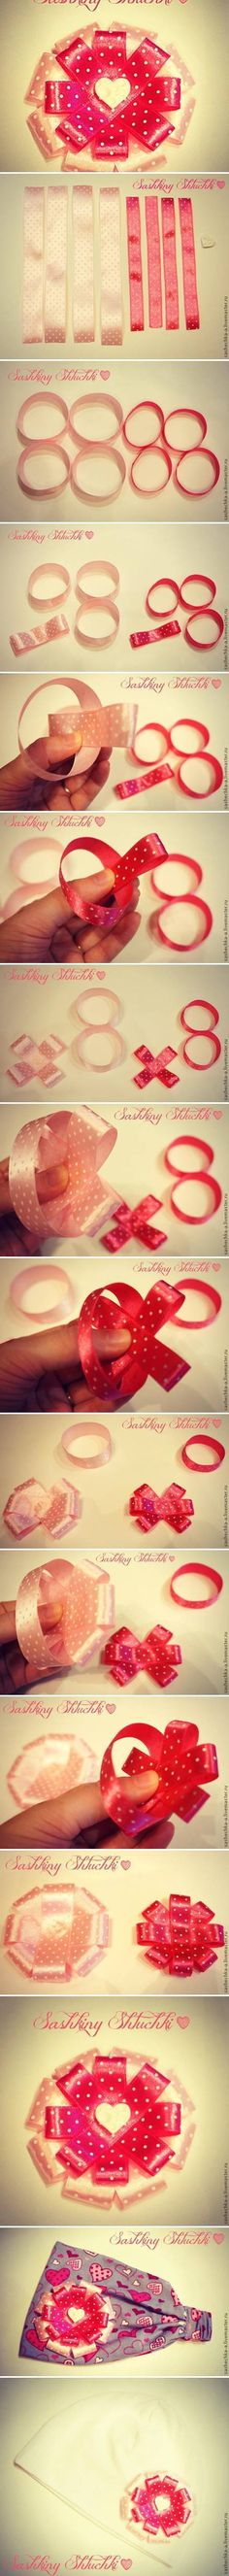 DIY Round Rose Bow DIY Projects | UsefulDIY.com